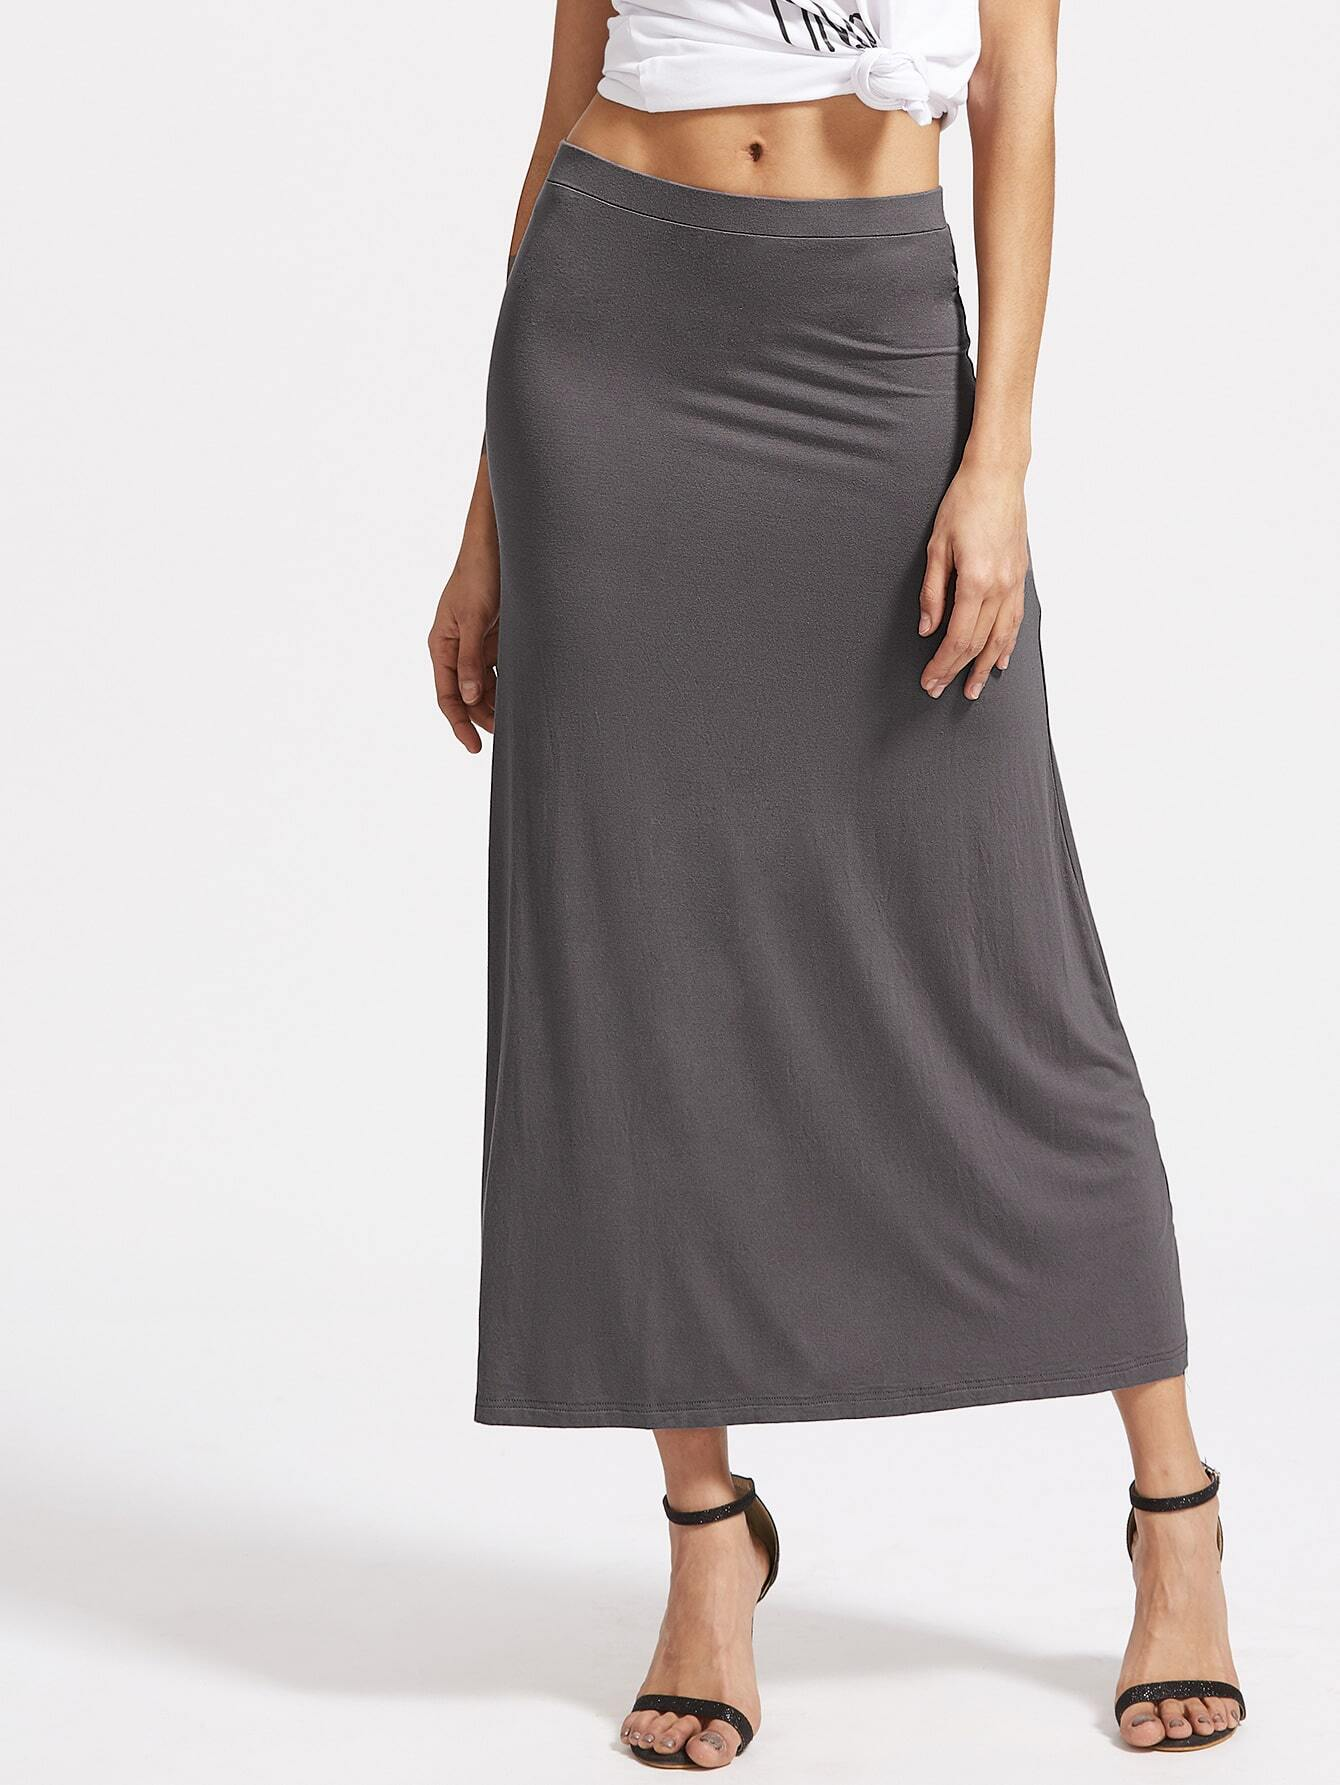 Find elastic waist skirt at ShopStyle. Shop the latest collection of elastic waist skirt from the most popular stores - all in one place.